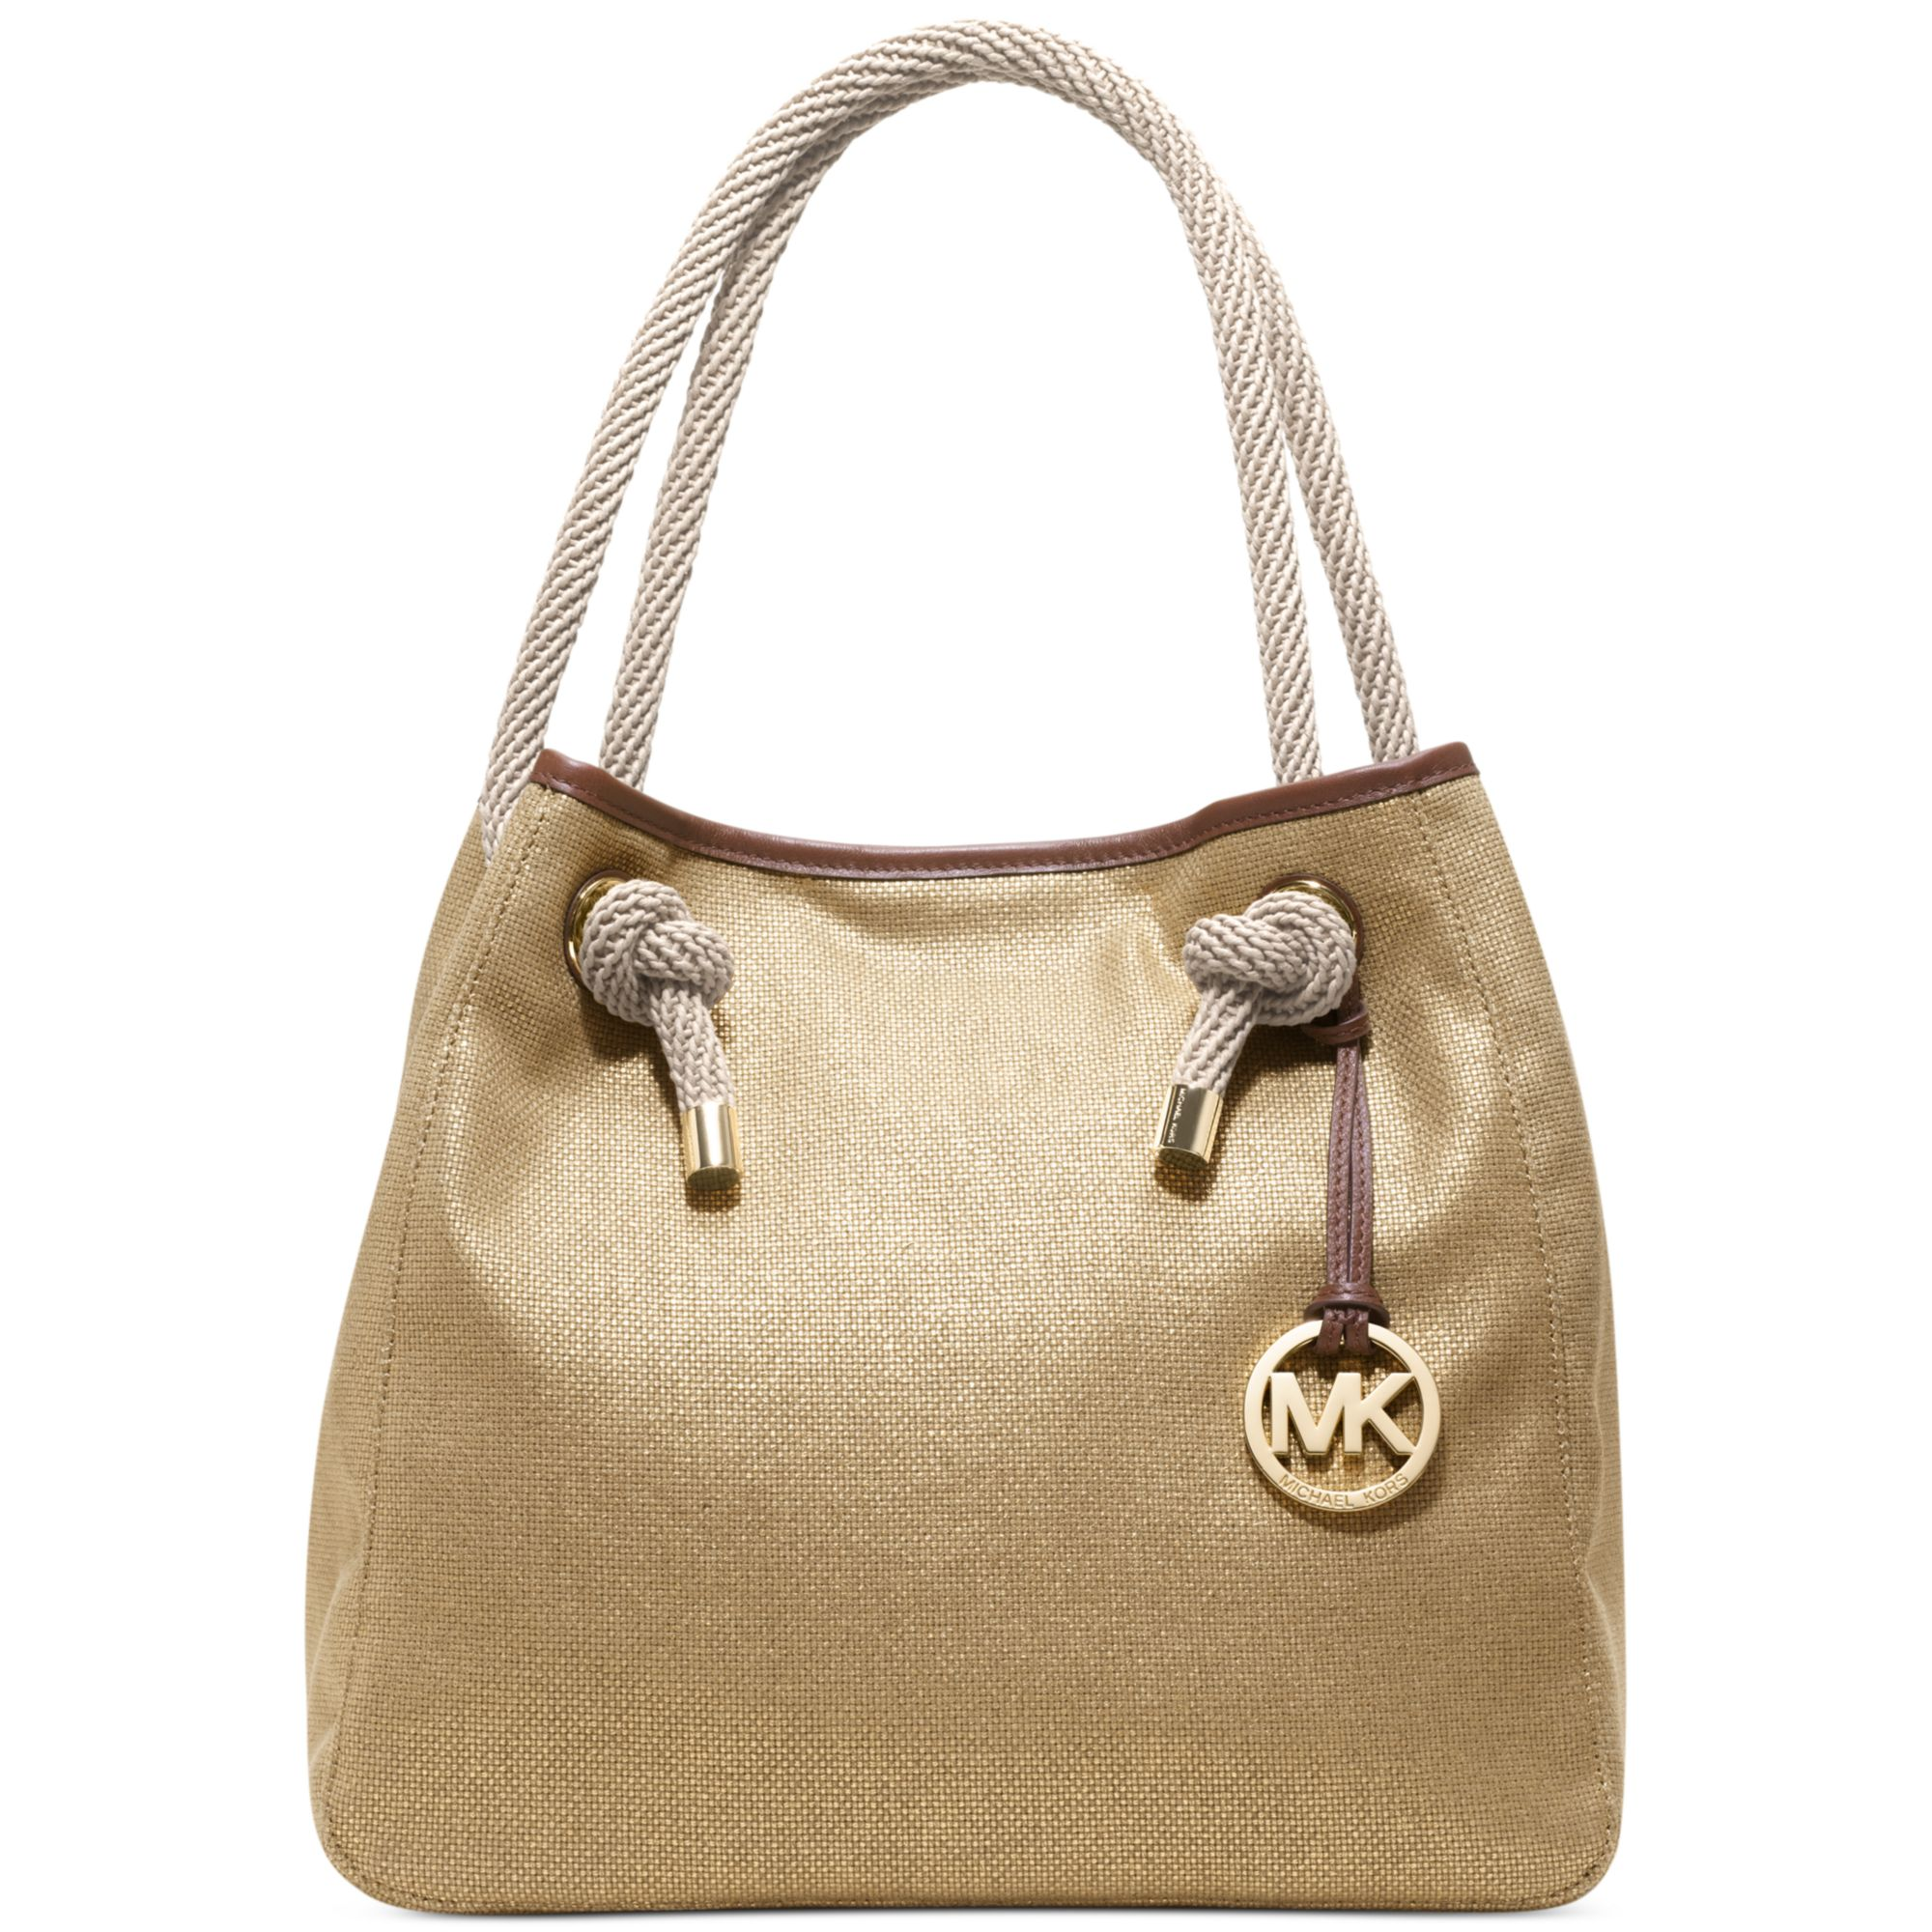 b3408699c29d ... sale lyst michael kors marina large grab bag in metallic 4fb97 c67a9